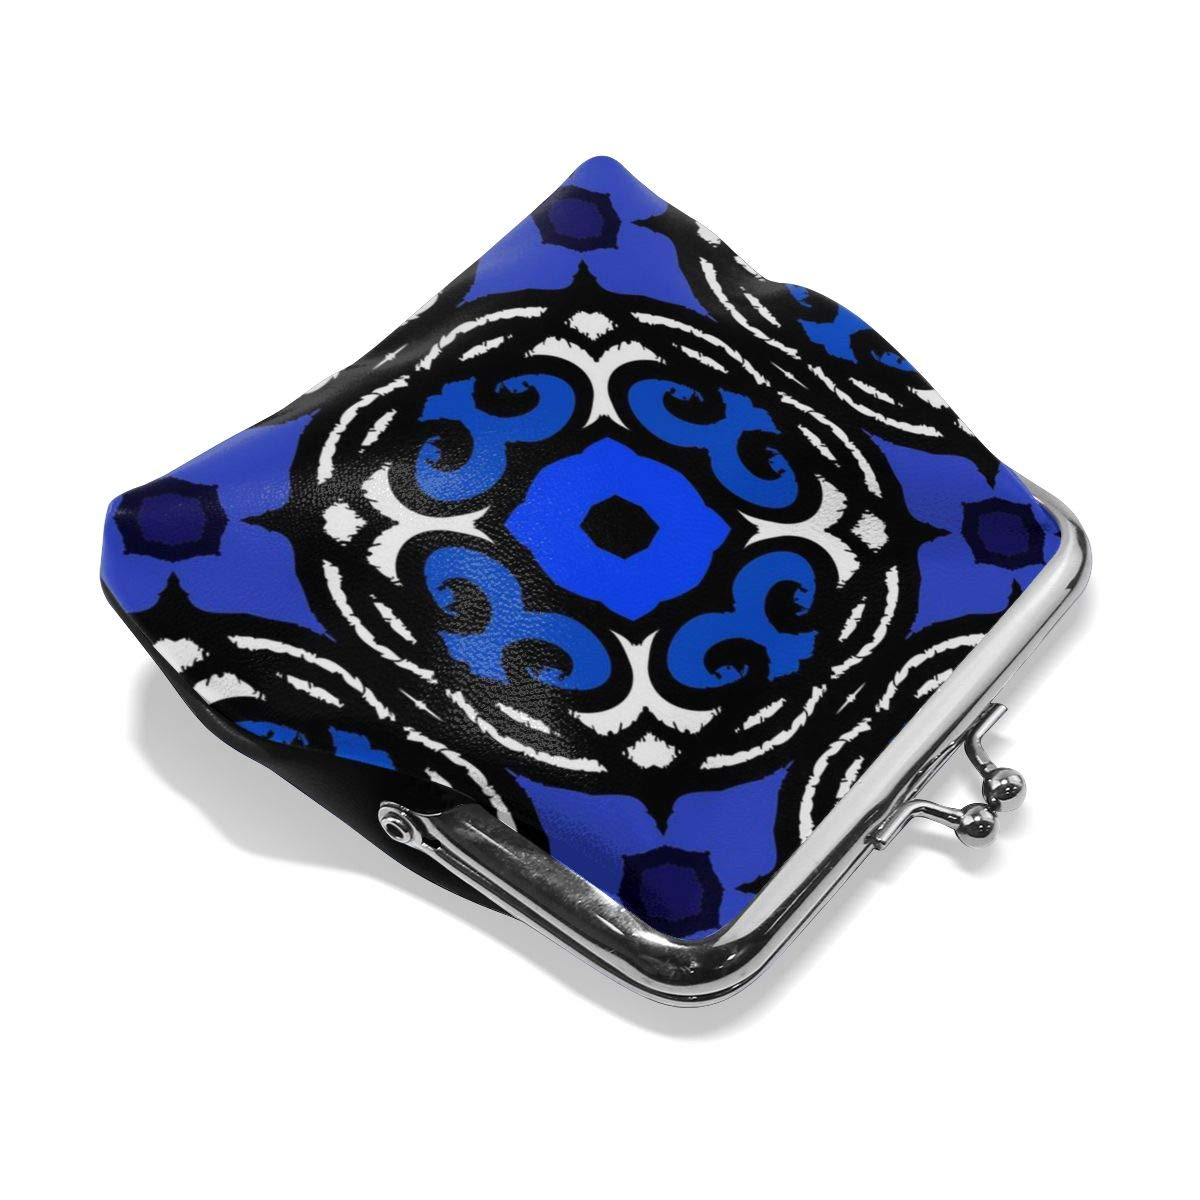 Yunshm Ethnic Pattern With Turkish Motifs Personalized Leather Classic Floral Coin Purse Clutch Pouch Wallet For Womens